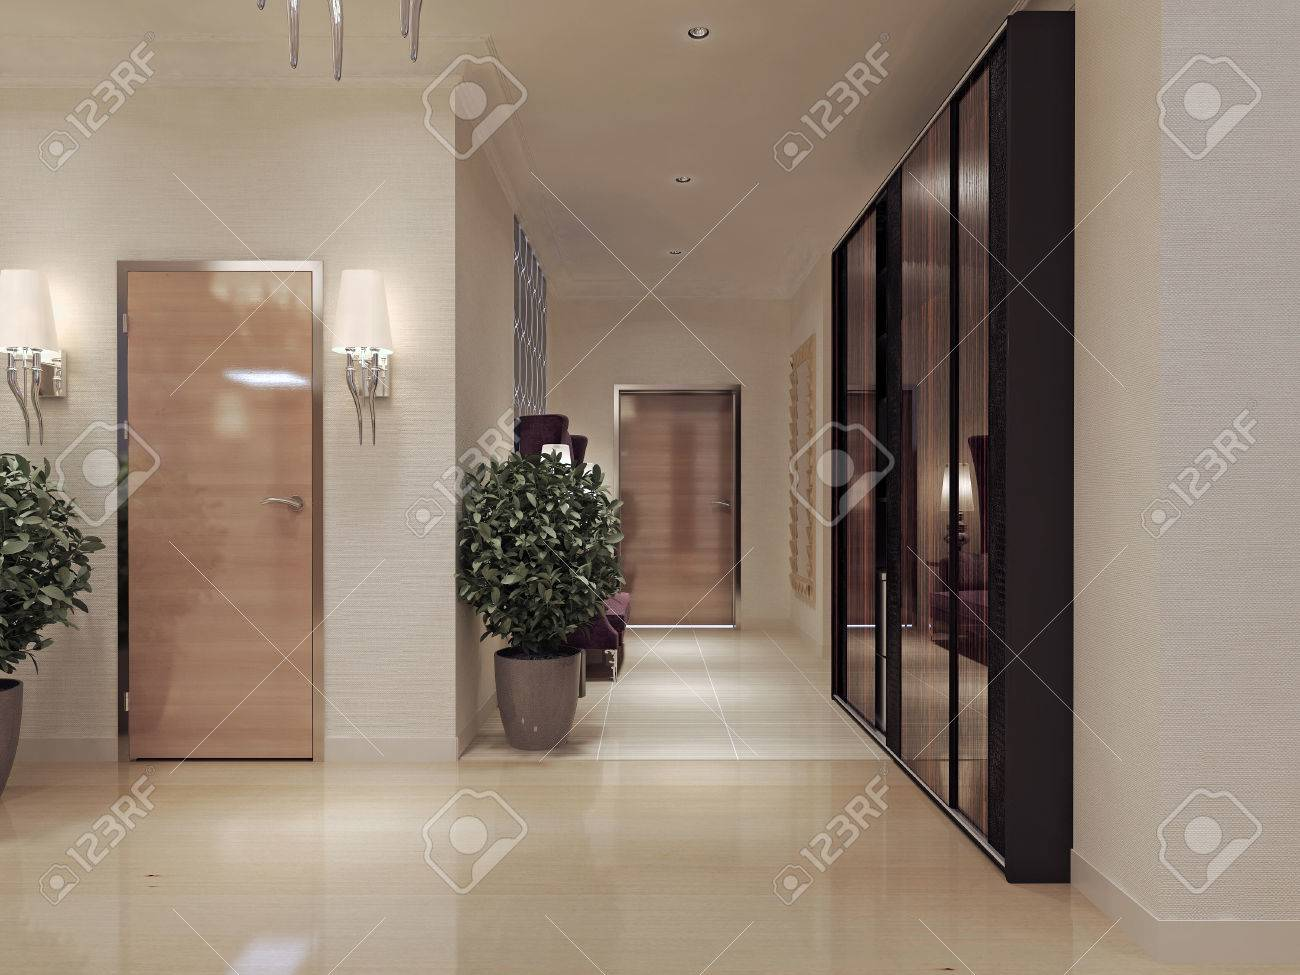 Corridor art deco style. 3d render stock photo picture and royalty